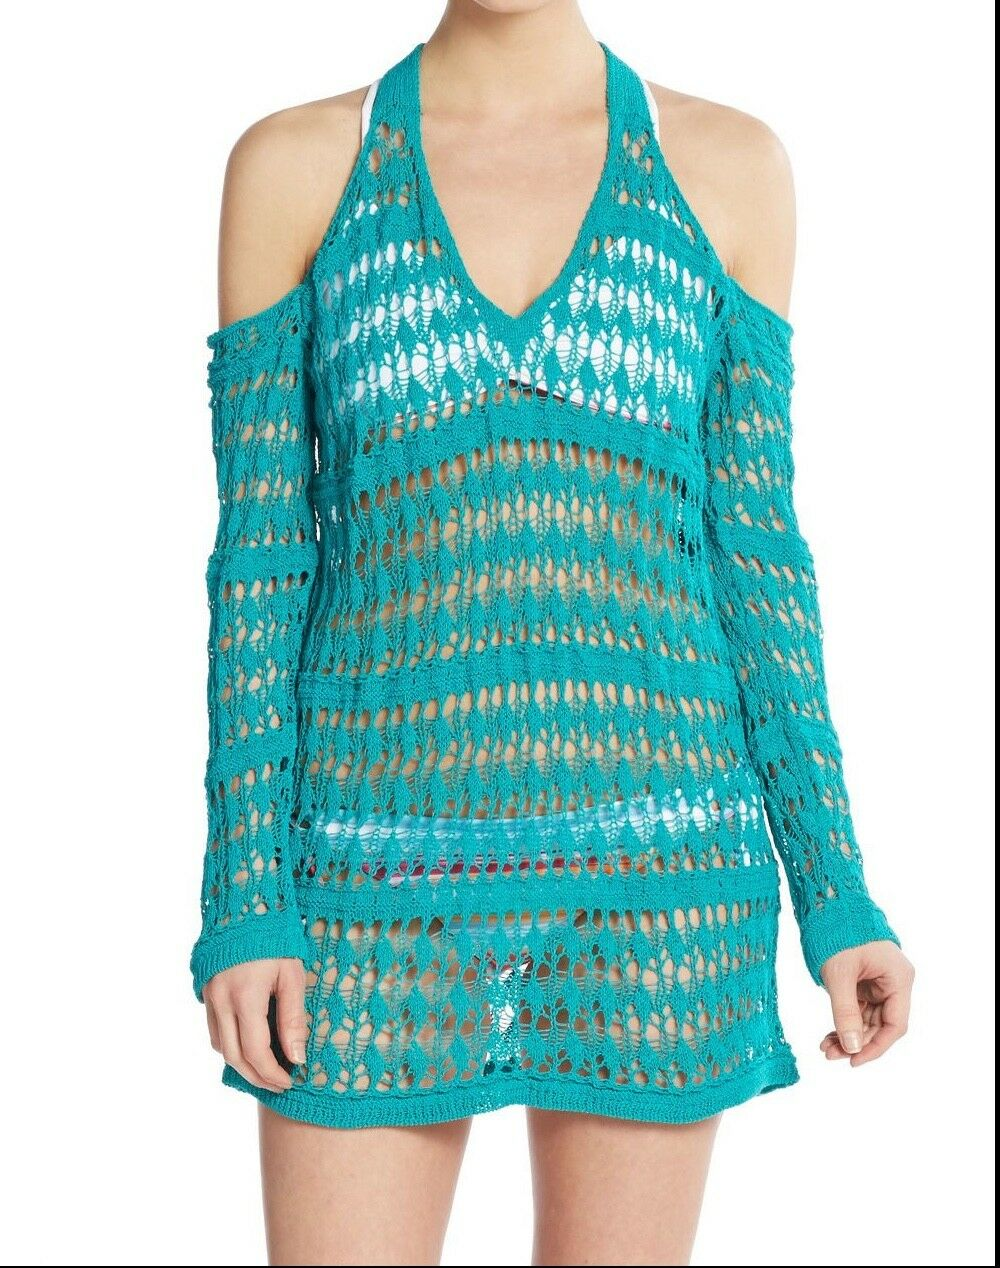 Anthropologie L Space Swimsuit Cover Up Dress XS Teal bluee Crochet Shoulder  169